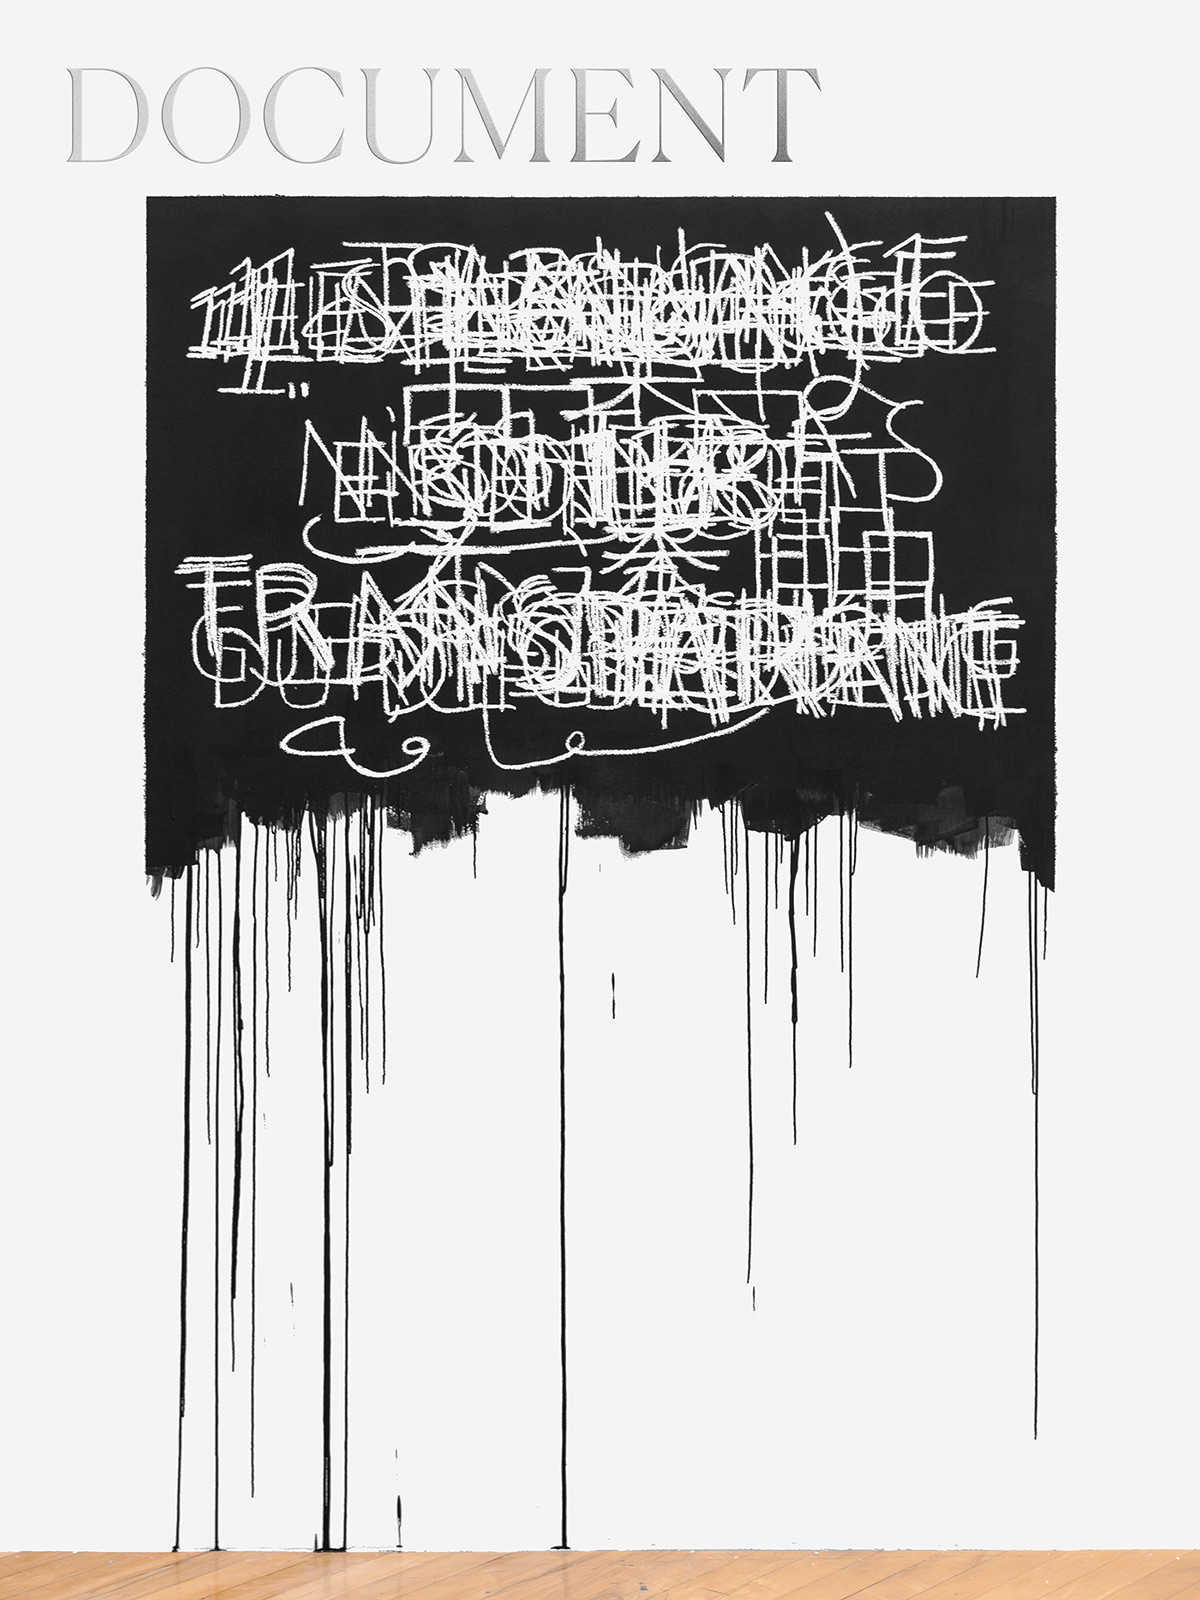 Artist Mel Bochner obscures words to reveal their dangerous potential